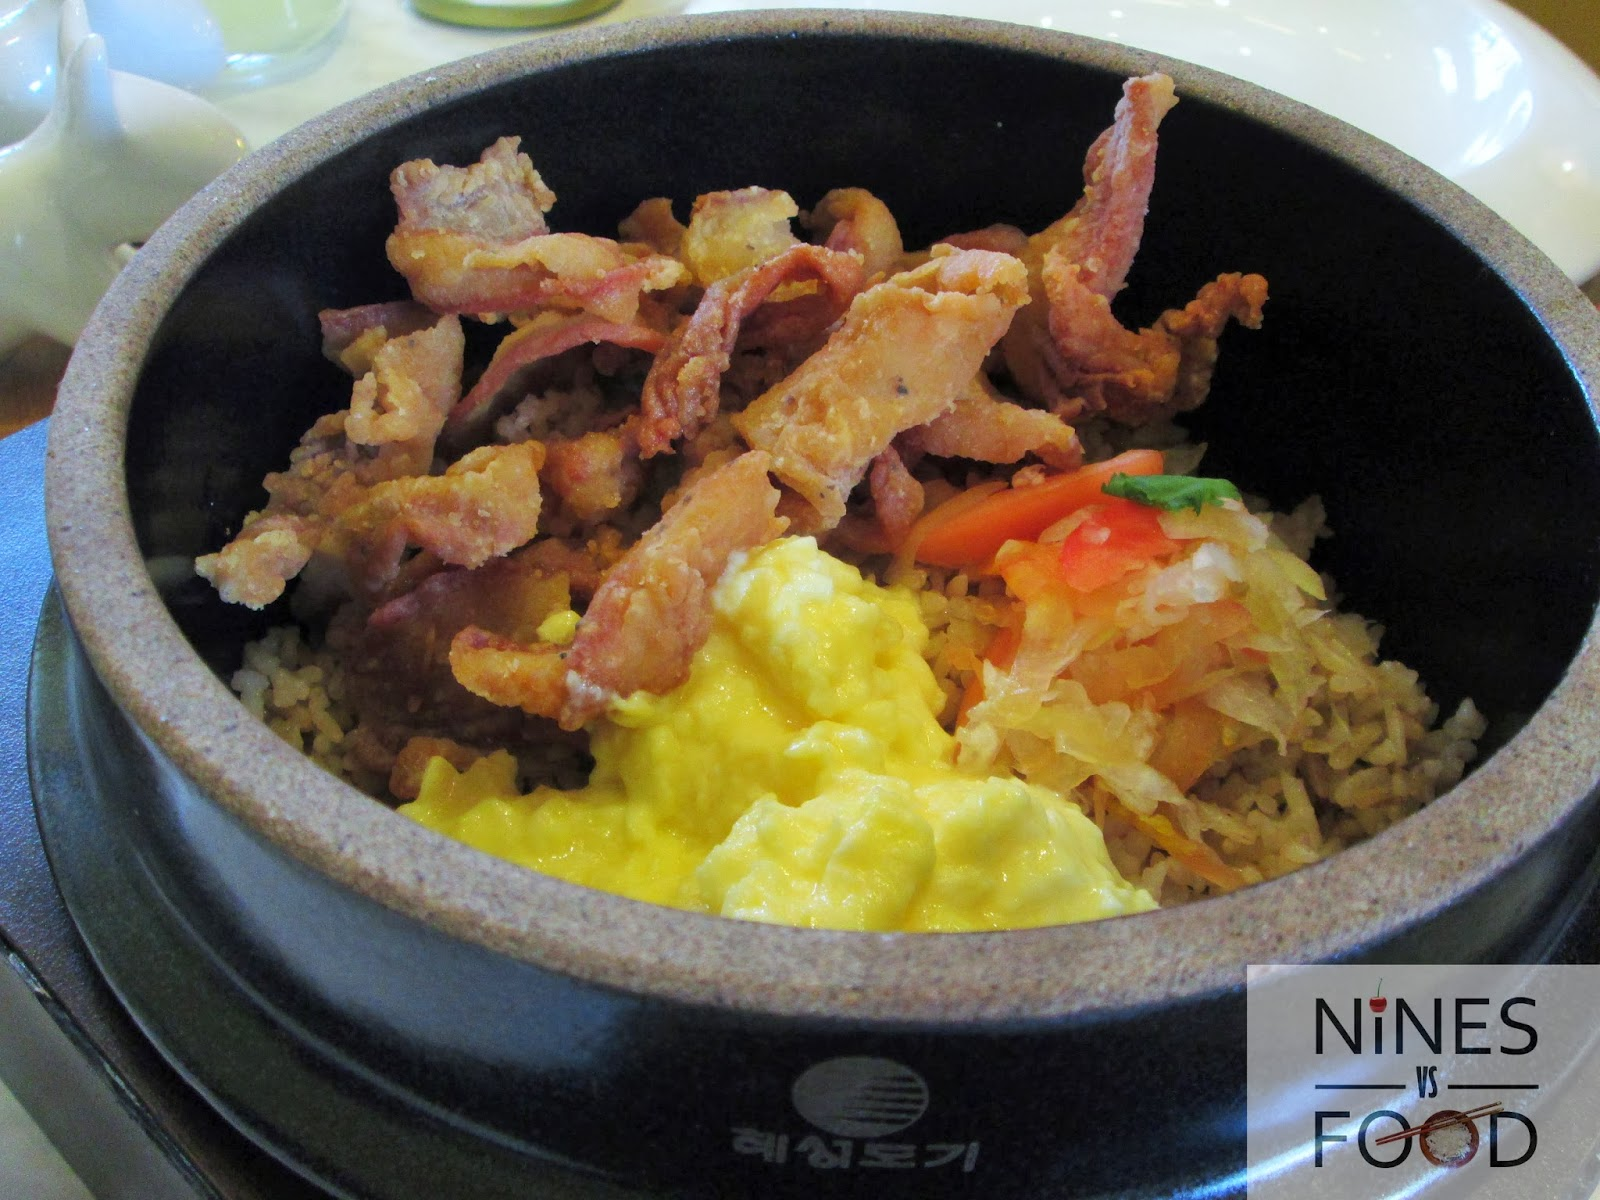 Nines vs. Food - B&P Shaw Mandaluyong-14.jpg